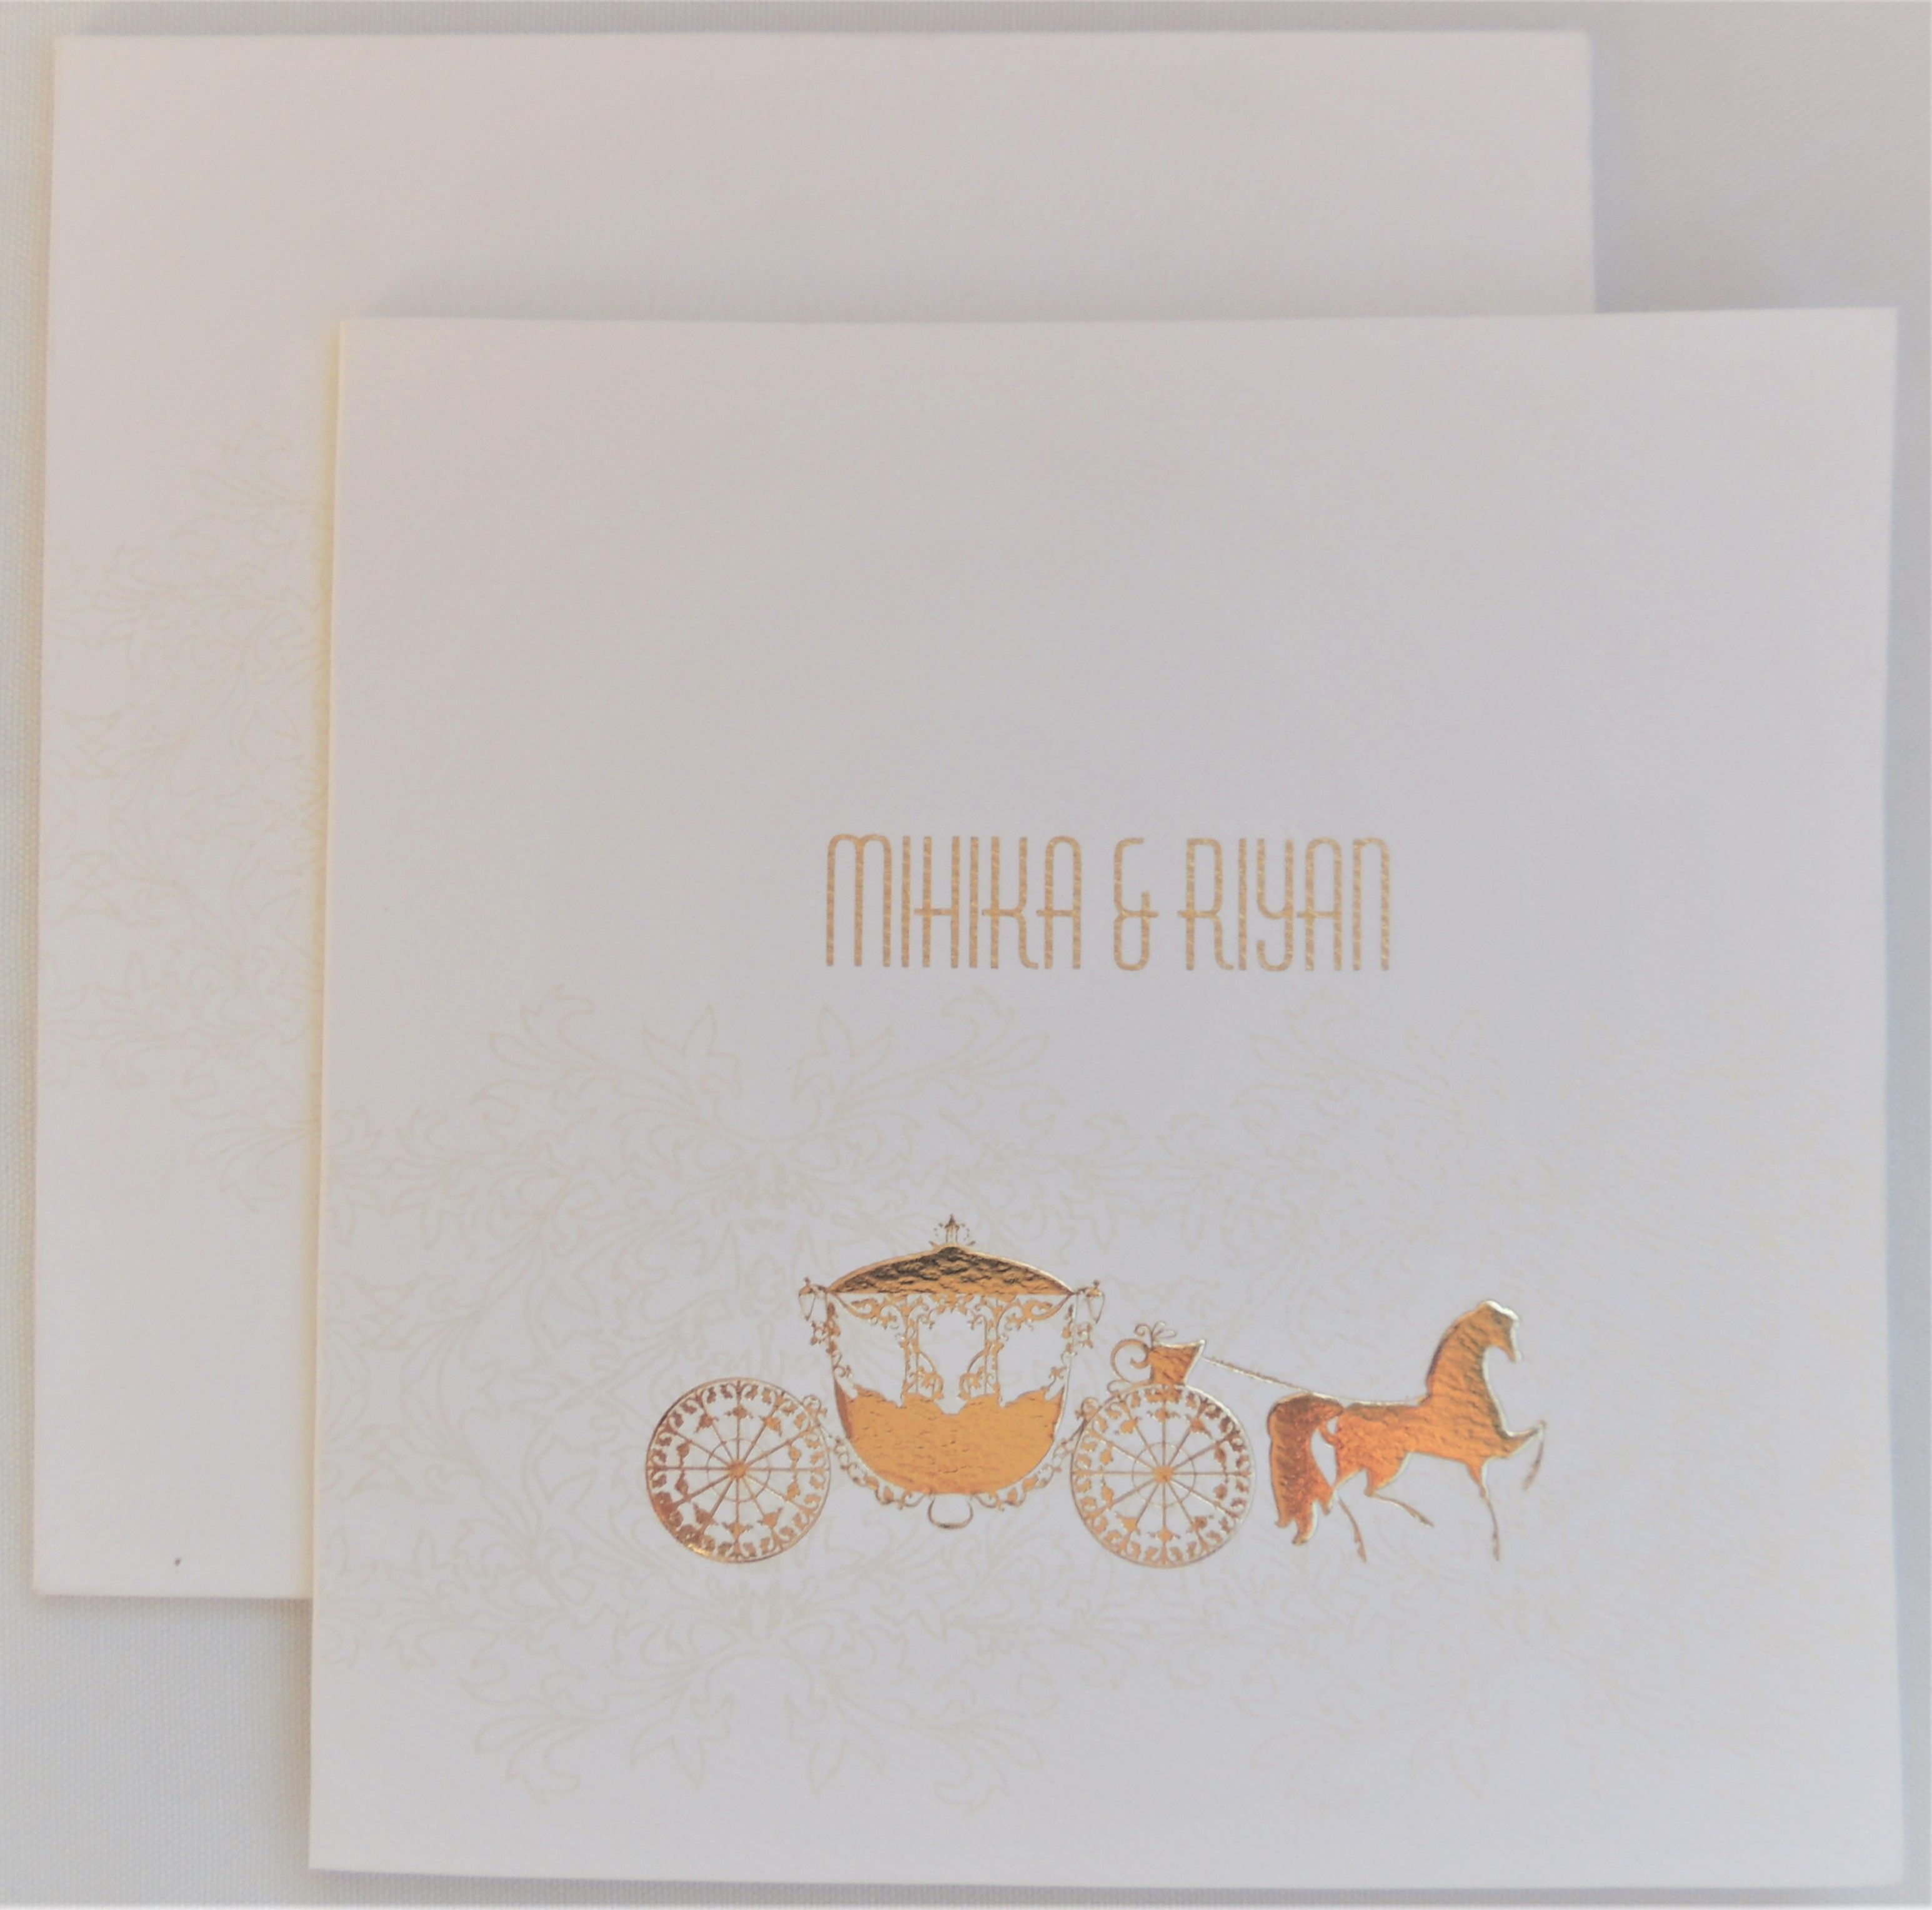 Elegant wedding invitation card with superior quality at a very low ...